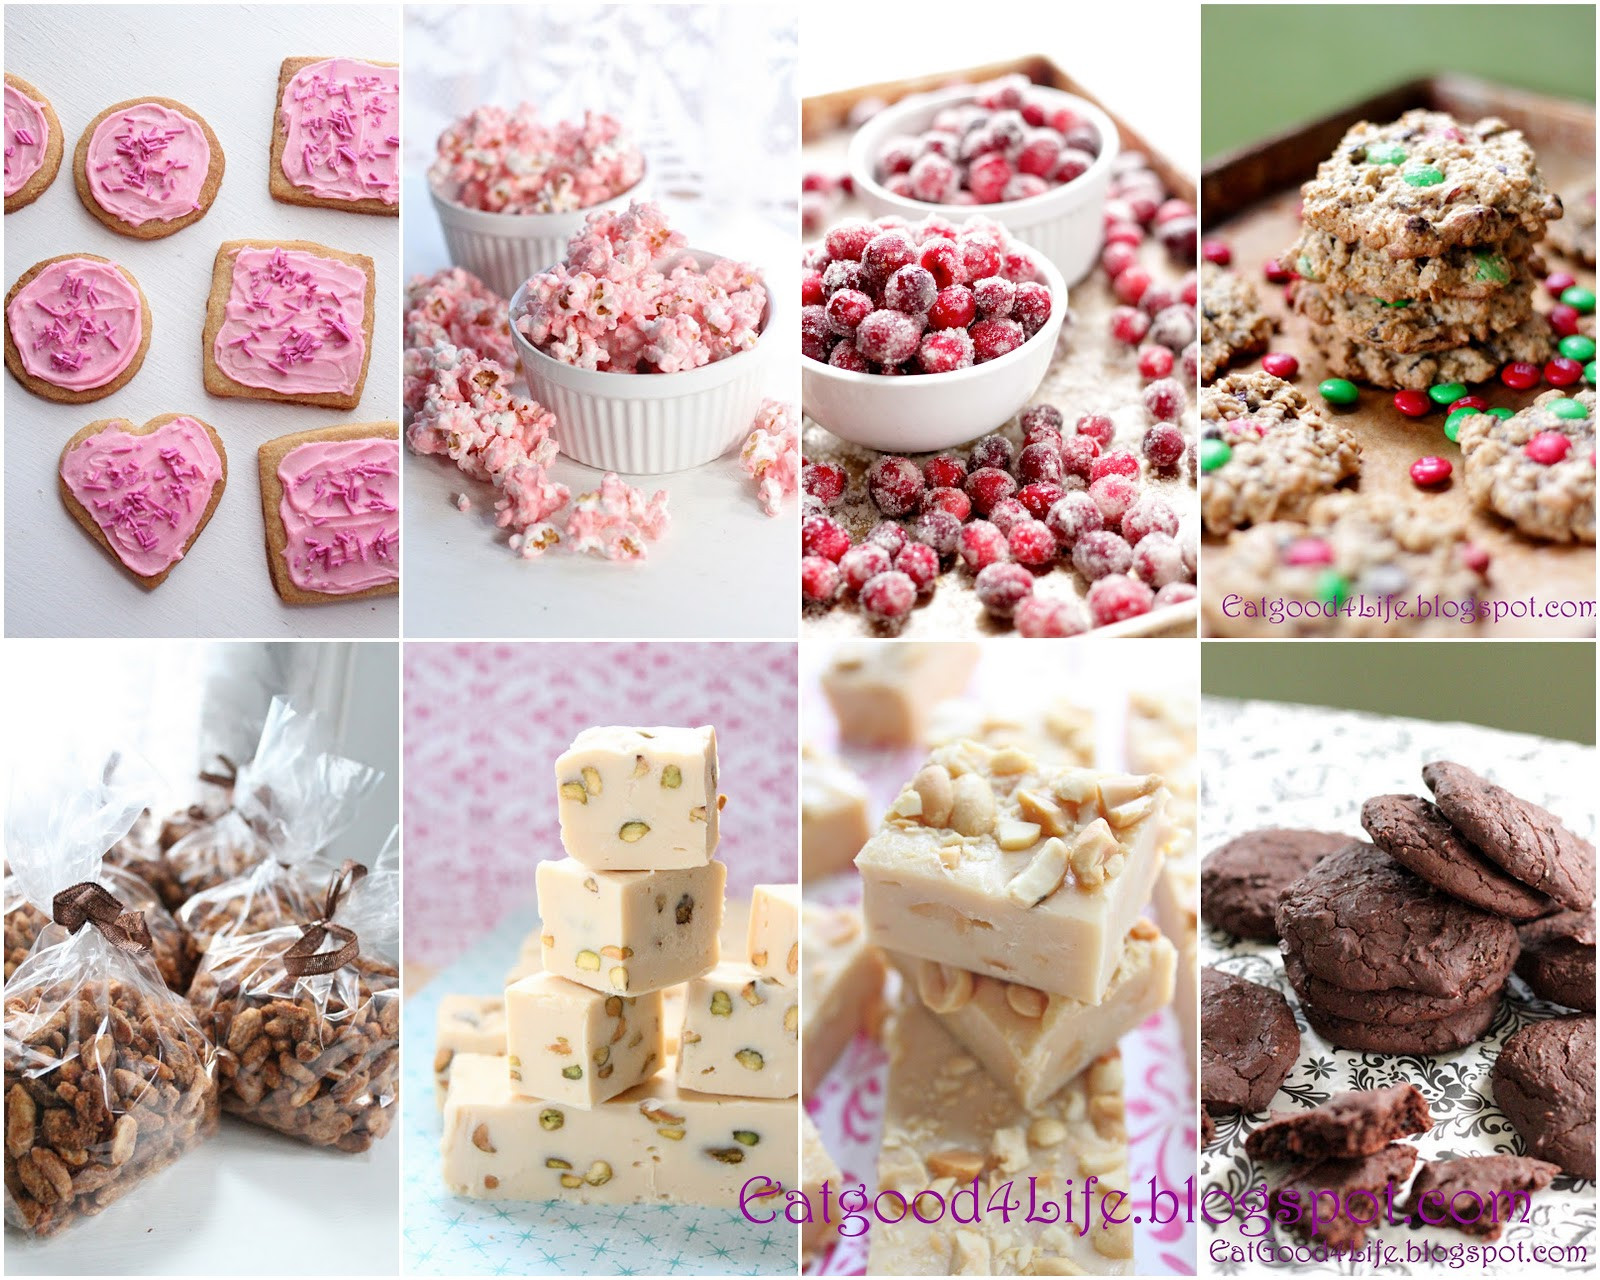 Baking Goods For Christmas Gifts  My Top 16 Christmas t baking ideas